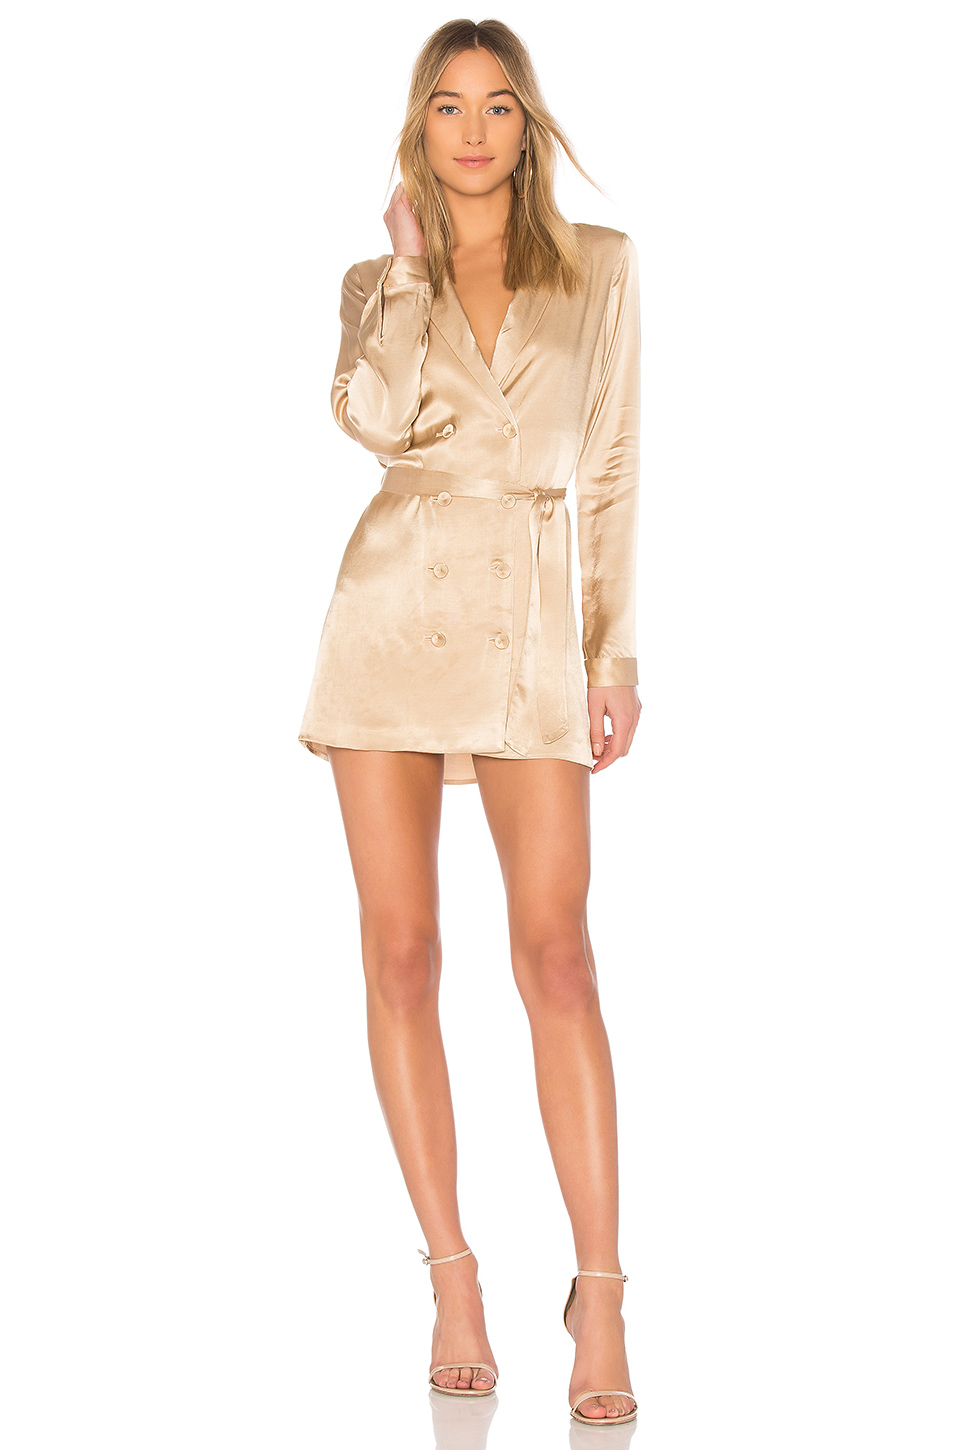 L'Academie The Sophie Dress in Champagne